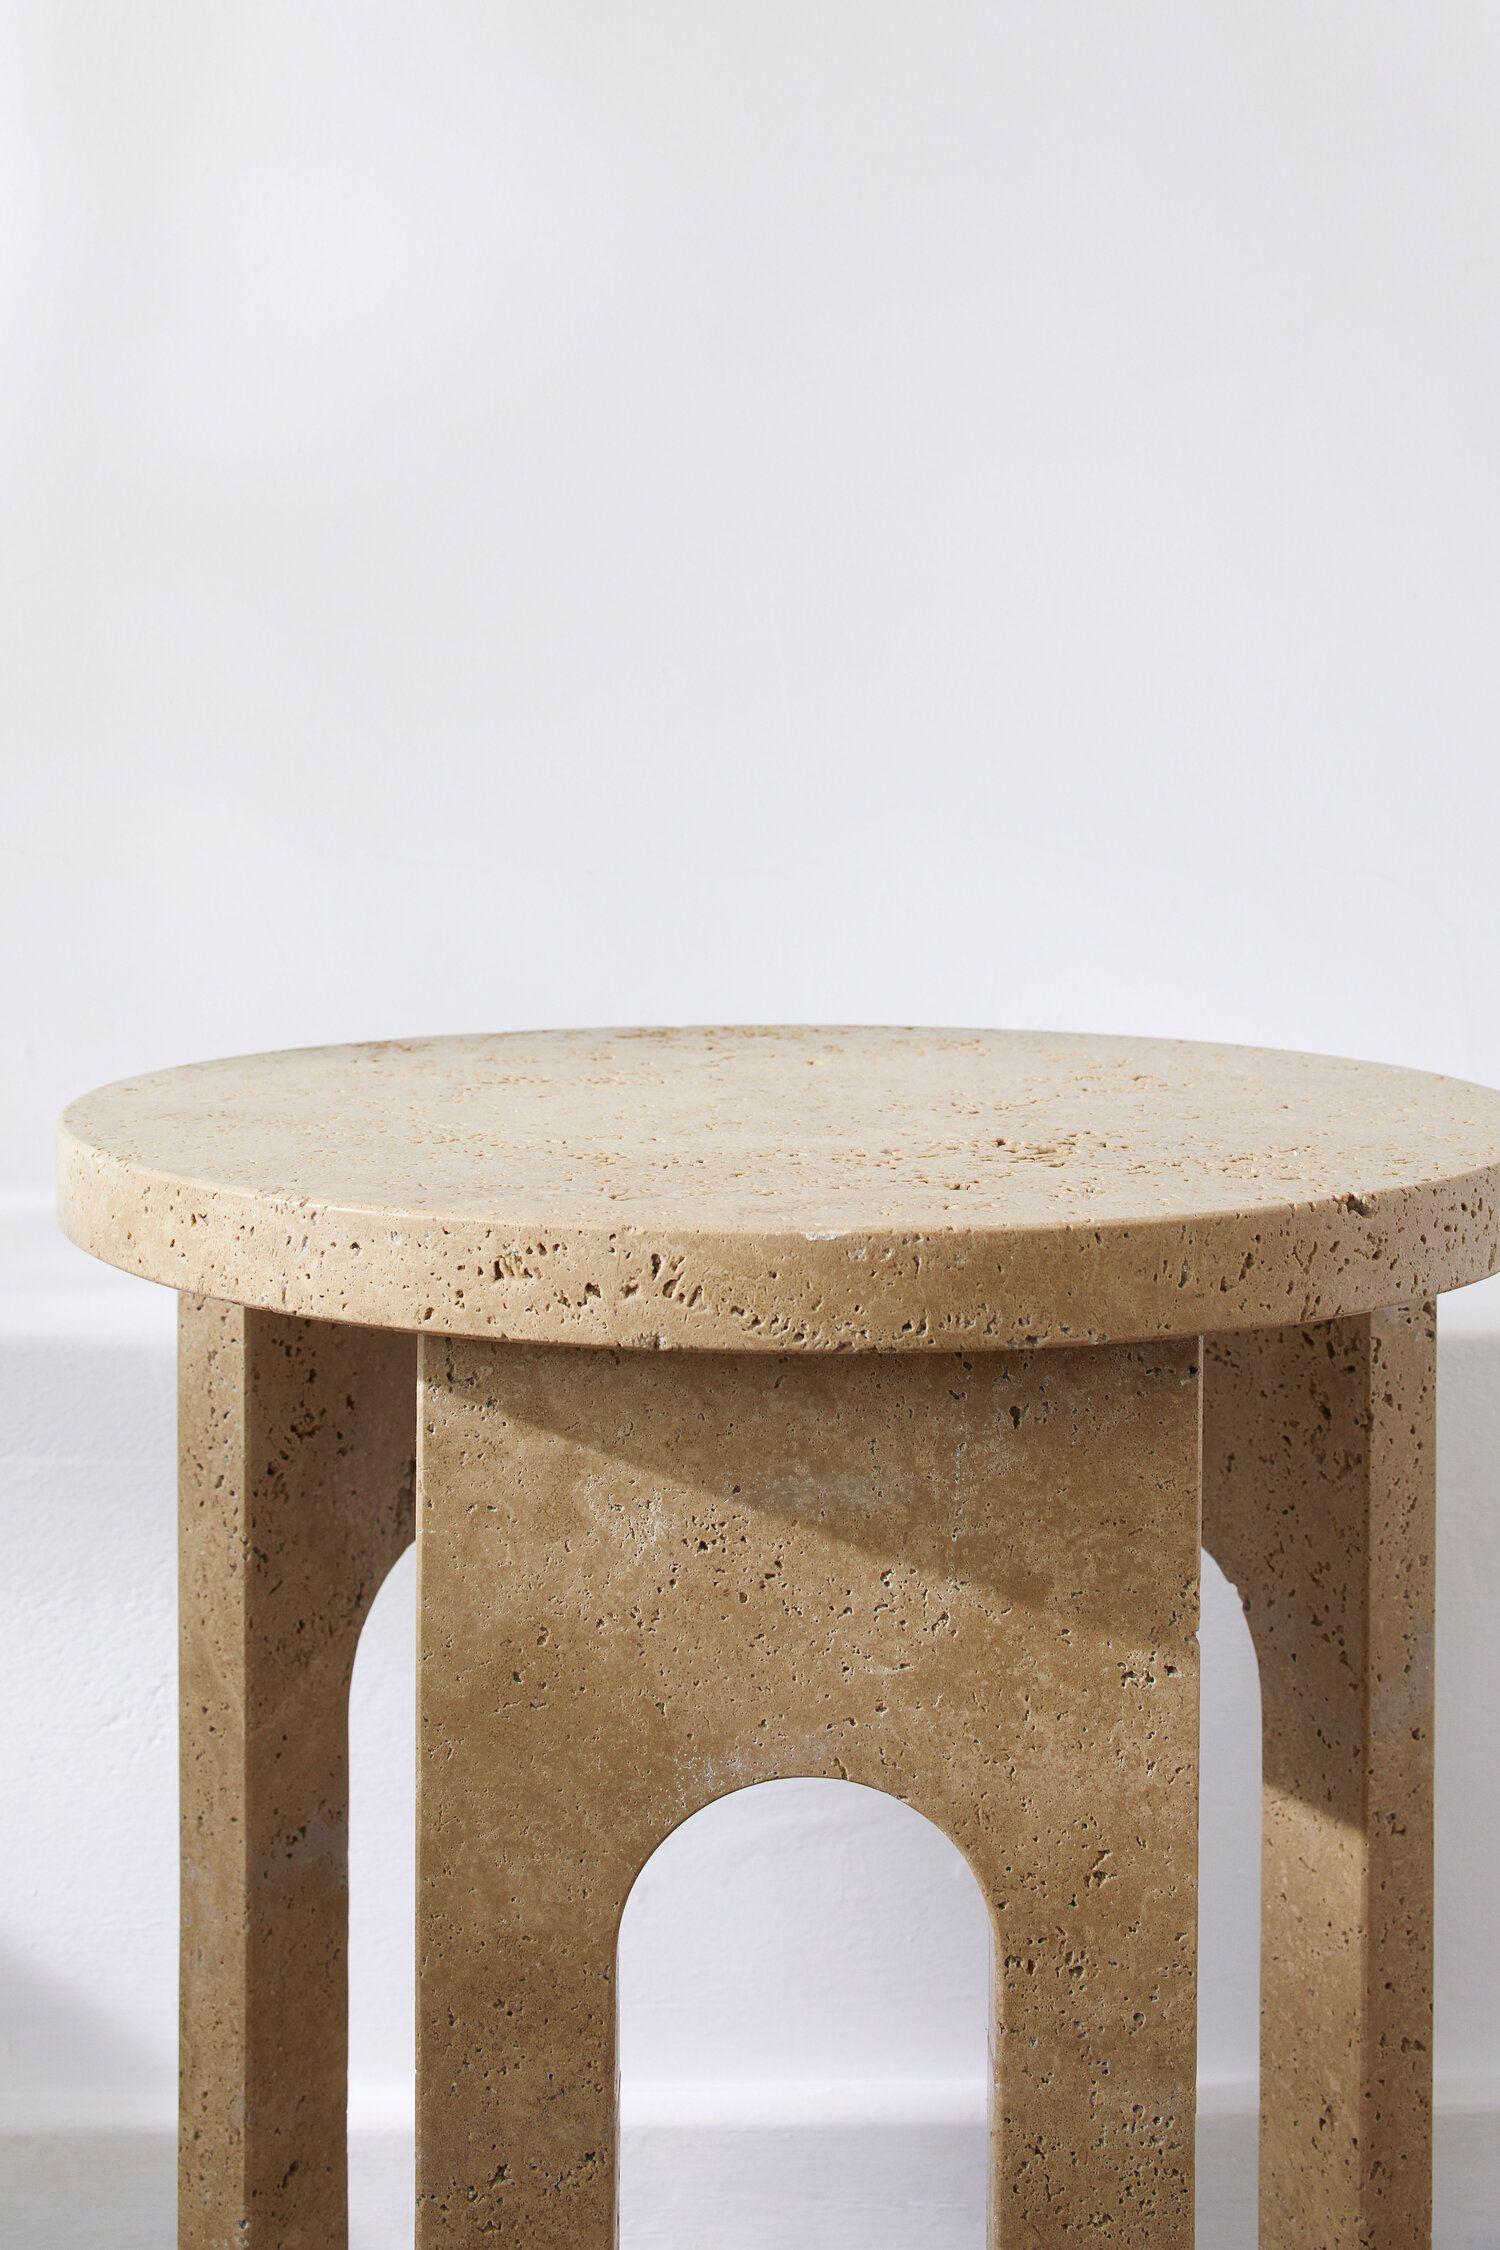 Bofred Wadi Side Table Travertine Sculptural Furniture New Furniture Furniture Collection [ 2250 x 1500 Pixel ]